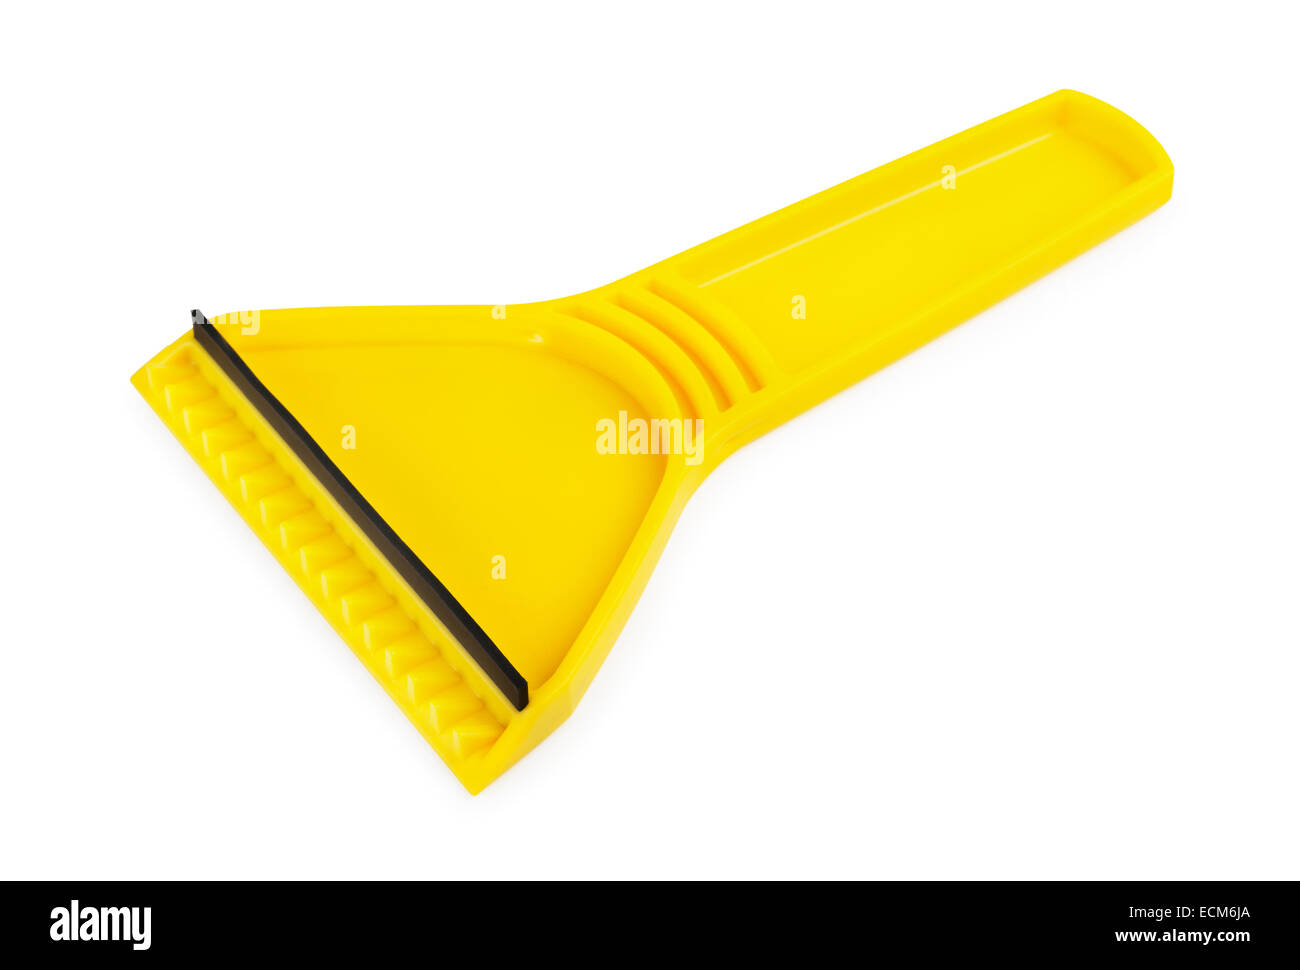 Ice scraper on a white  background - Stock Image